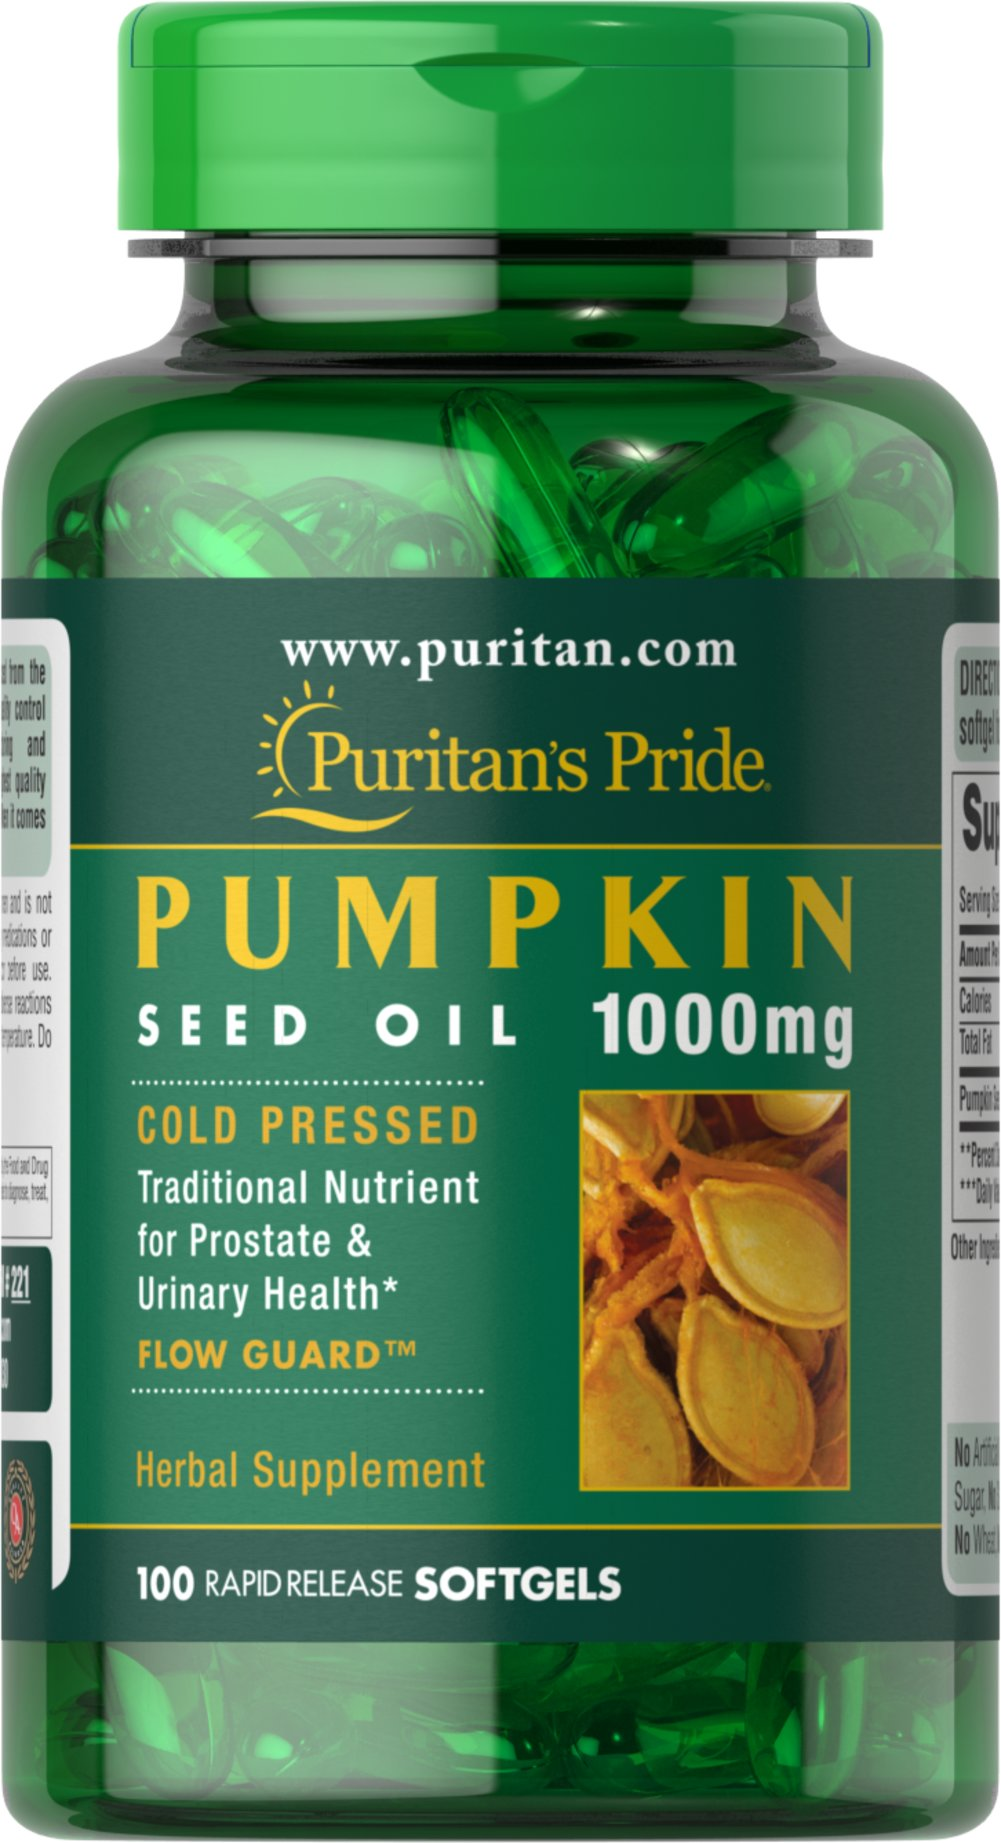 Pumpkin Seed Oil 1000 mg <p>Enjoy pure, cold-pressed pumpkin seed oil in easier-to-swallow softgels. Pumpkin seeds contain nutritional properties such as vitamins and trace minerals.</p><p></p><p></p><p></p> 100 Softgels 1000 mg $10.29